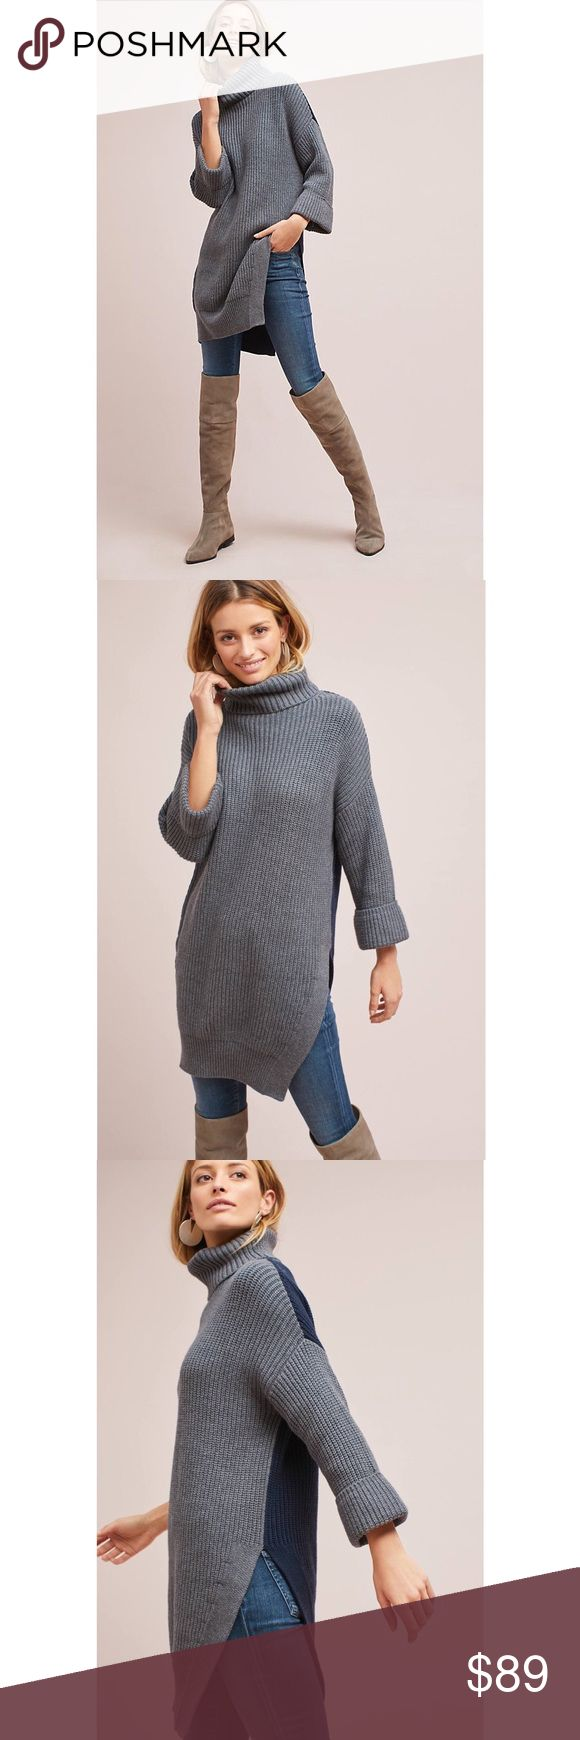 """Anthropologie Cuffed-Sleeve Turtleneck Tunic Sz L Anthropologie Cuffed-Sleeve Turtleneck Tunic Sweater.  Incredibly soft and cozy, this long-line tunic layers over your jeans or corduroys for versatile, of-the-moment style.  * cotton, nylon, wool * Side slit detail * Pullover styling * Hand wash * 34"""" long * New with tags * Pet free smoke free  RH.11.17 Anthropologie Sweaters Cowl & Turtlenecks"""